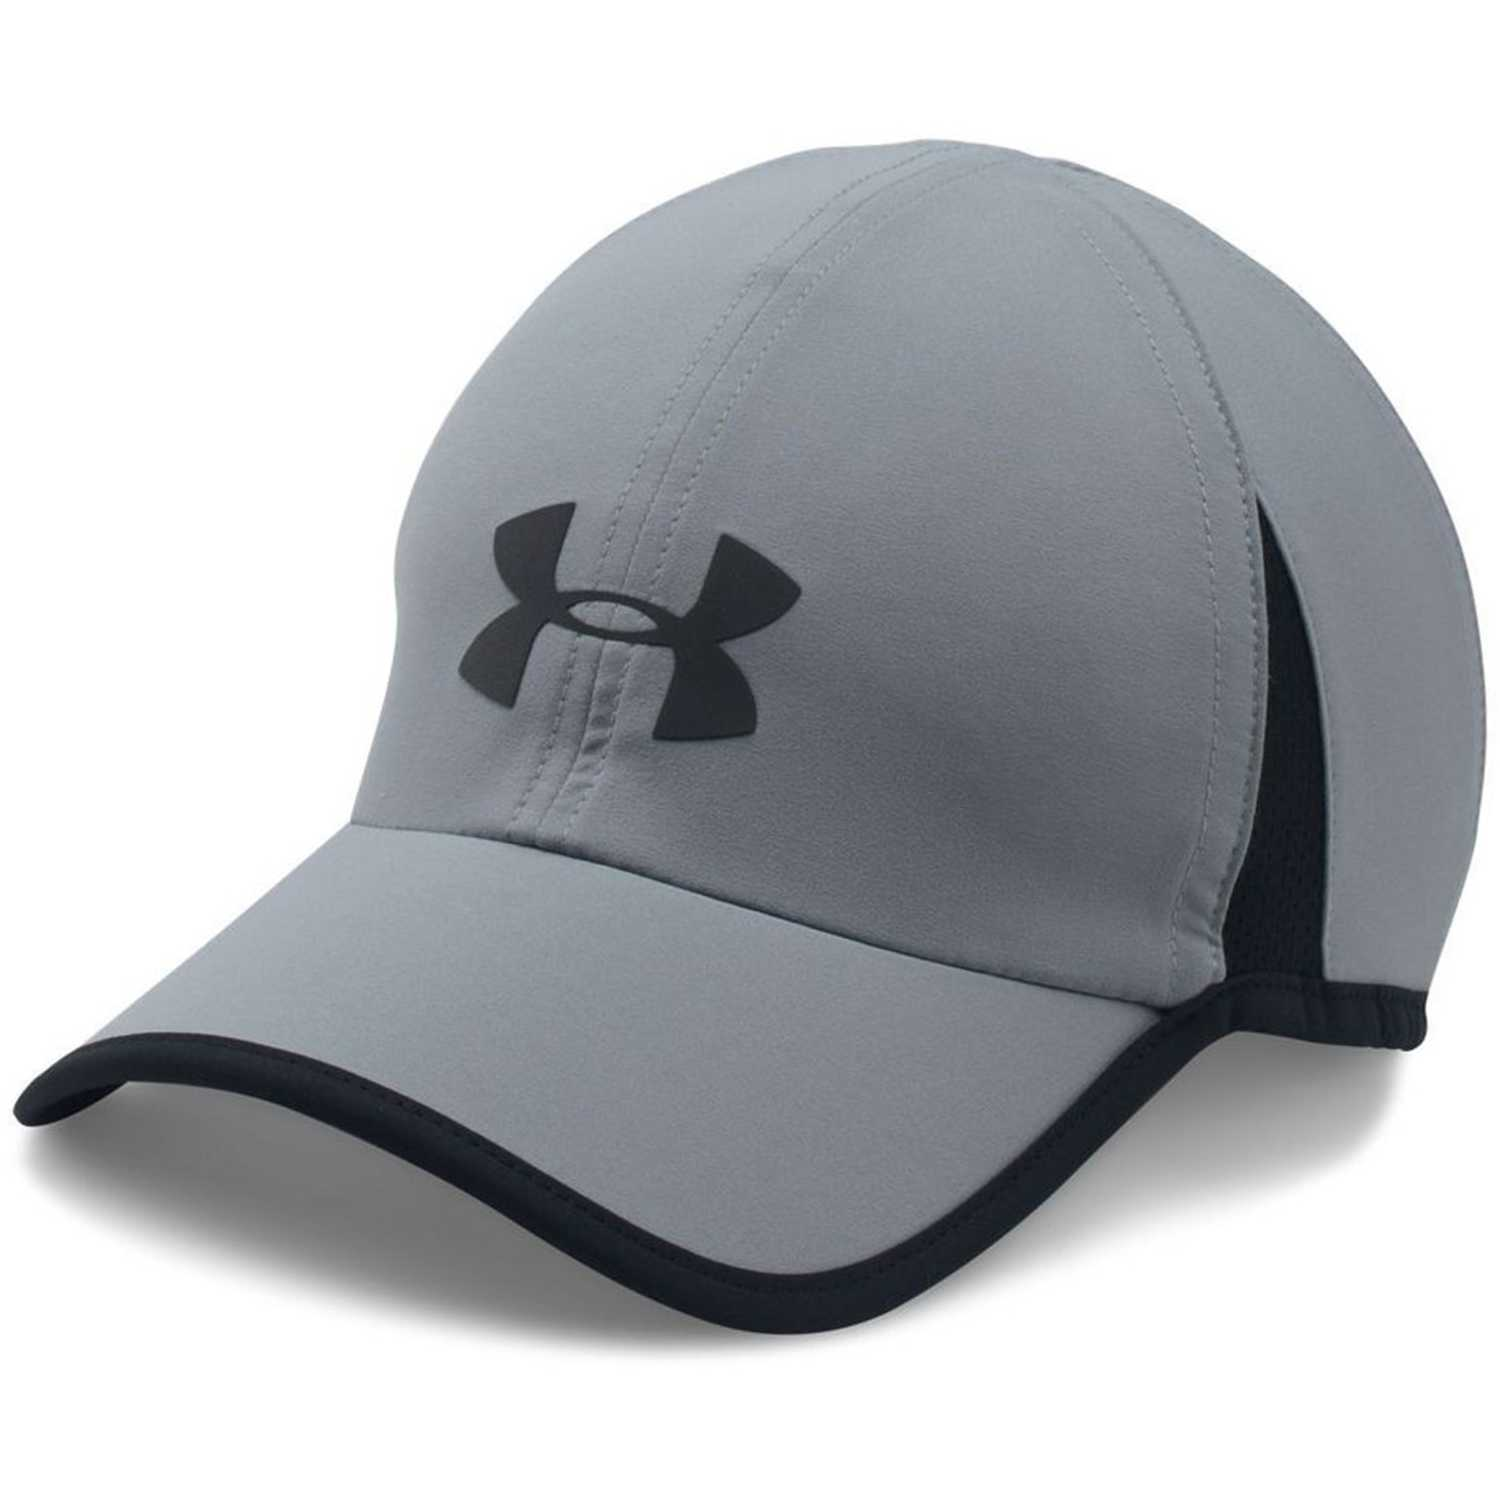 Under Armour men's shadow cap 4.0 Gris / negro Gorros de Baseball